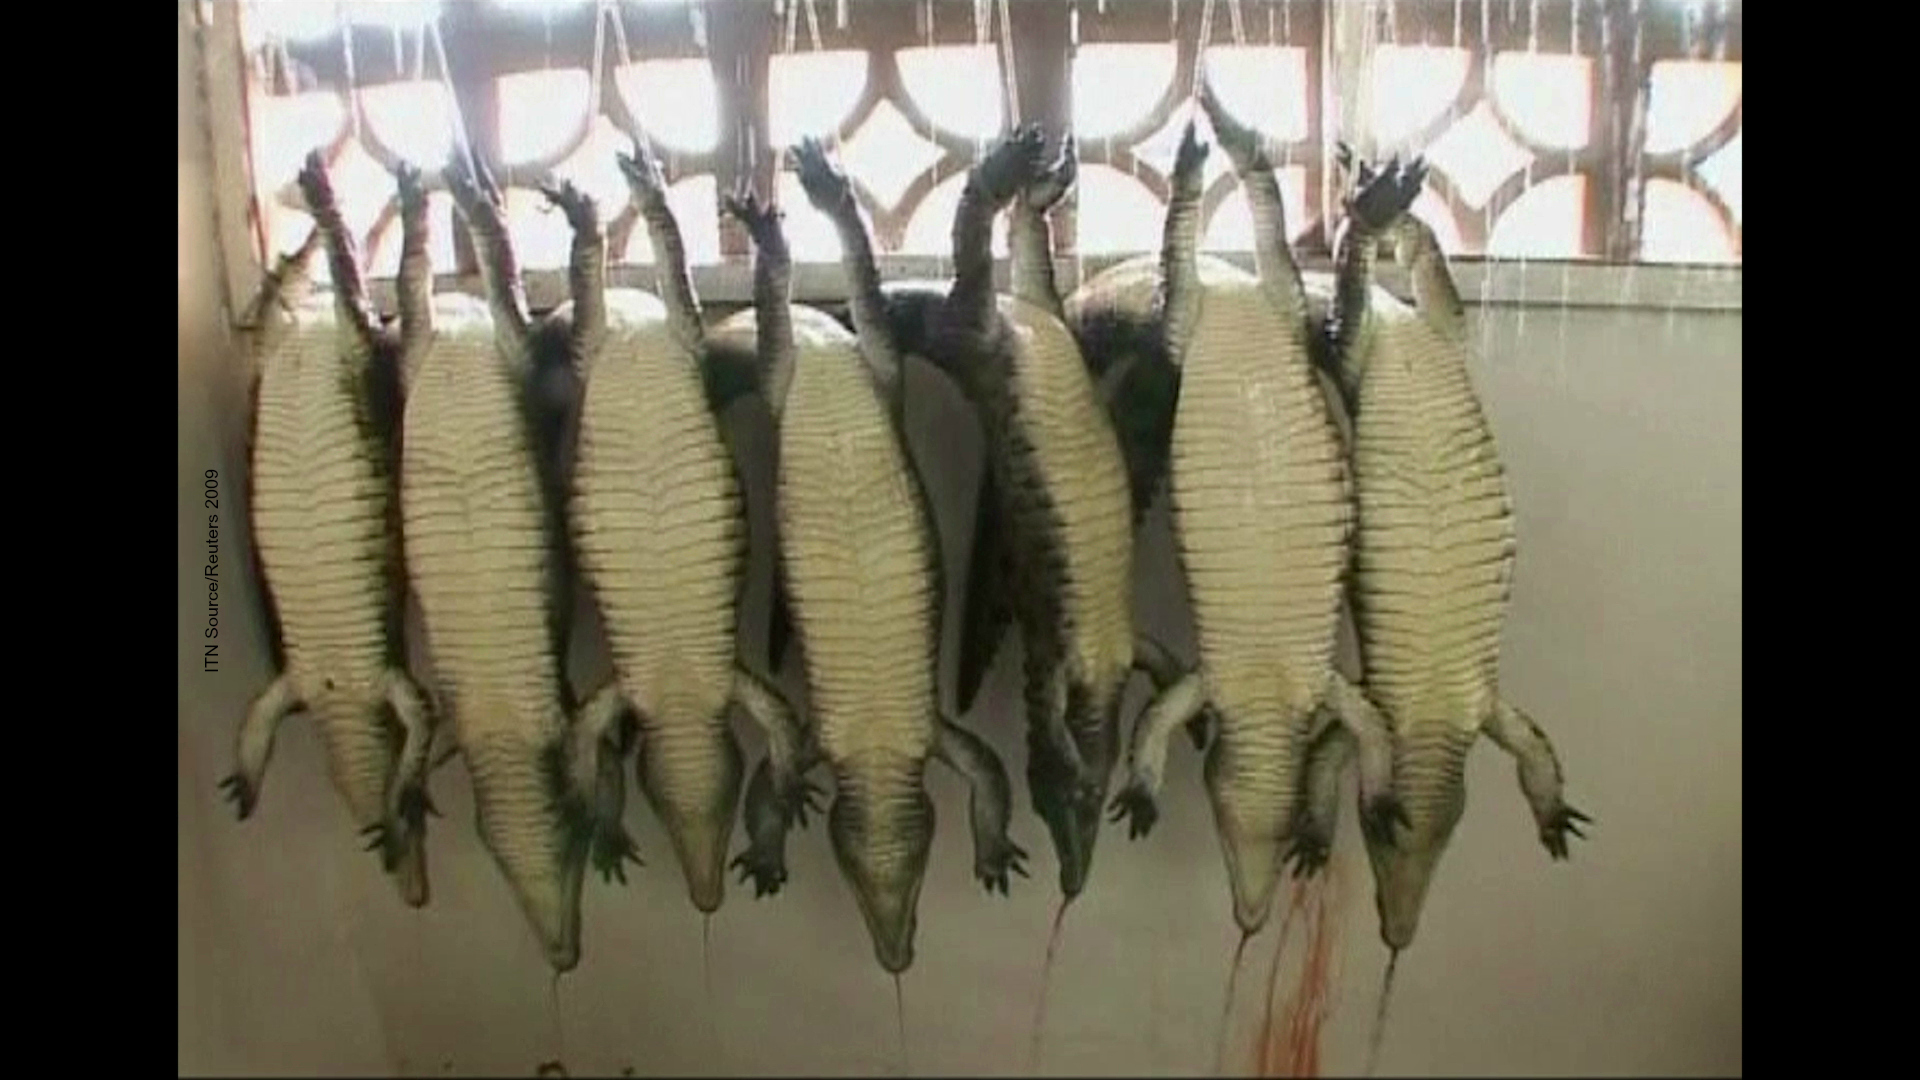 Exposed Crocodiles And Alligators Factory Farmed For